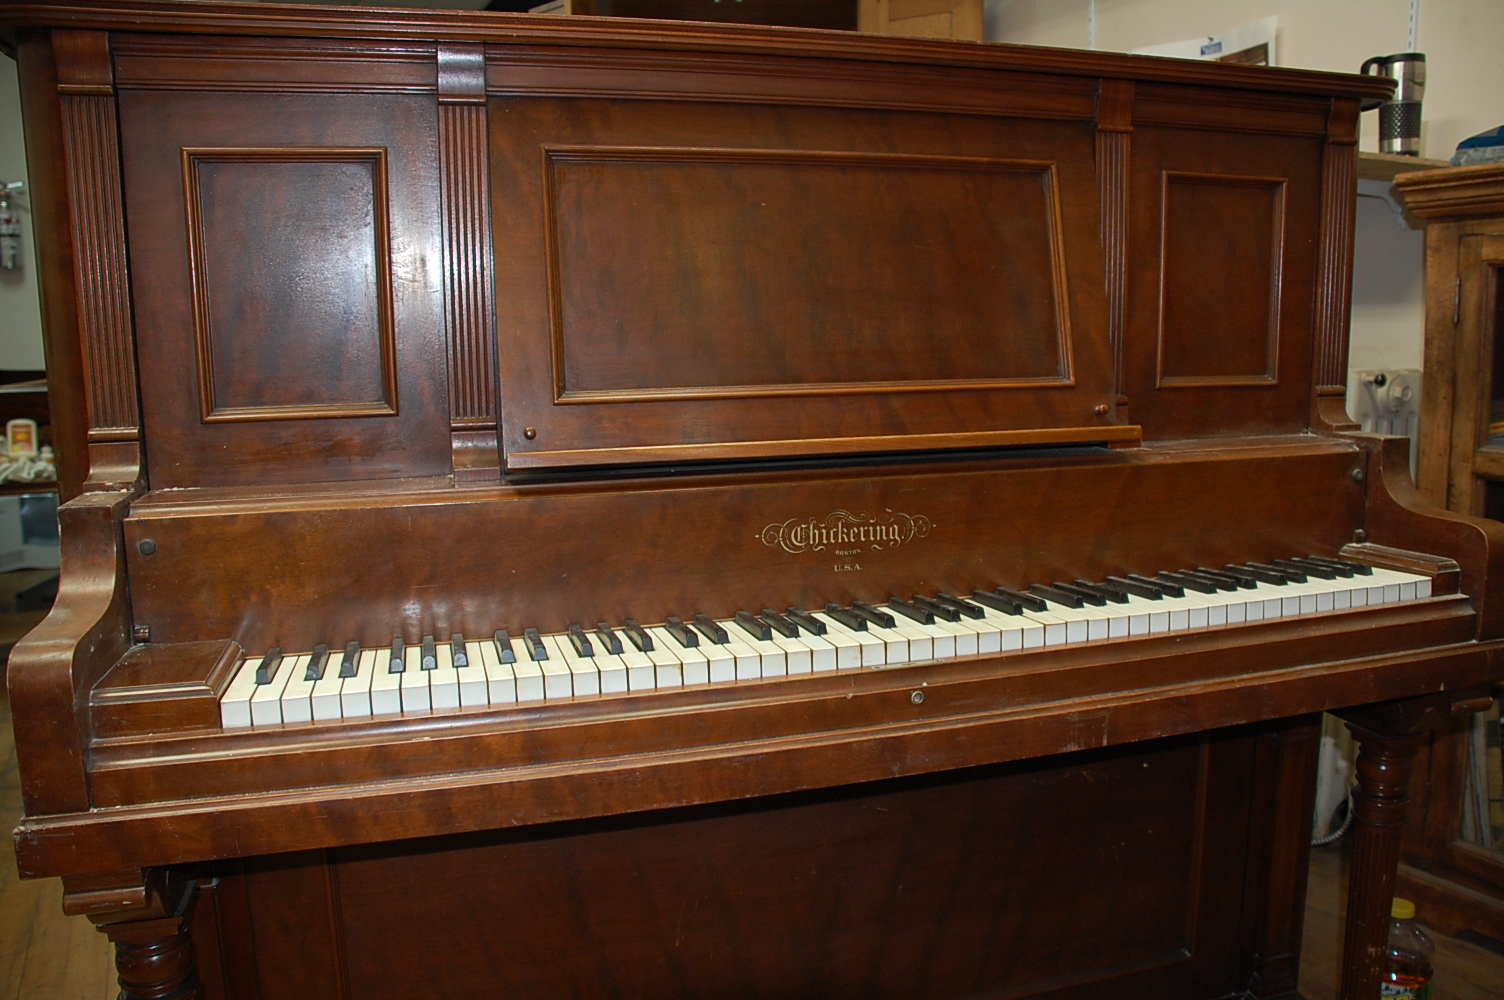 Is this a Good Used Piano?